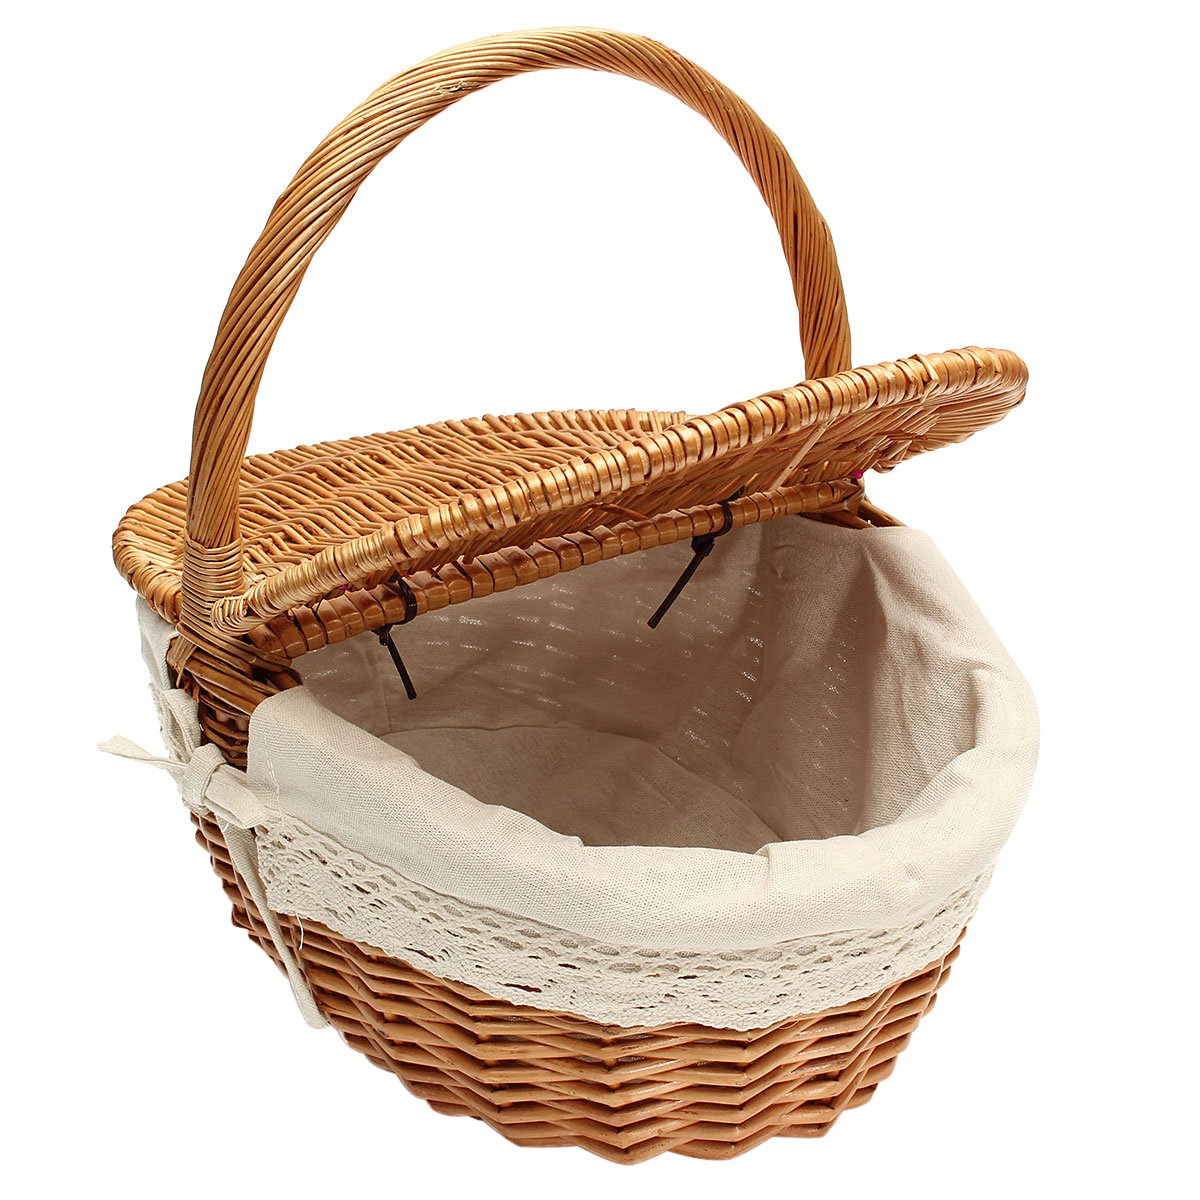 OUNONA Wicker Willow Picnic Basket Hamper Shopping Storage Basket with Lid and Handle and White Liner